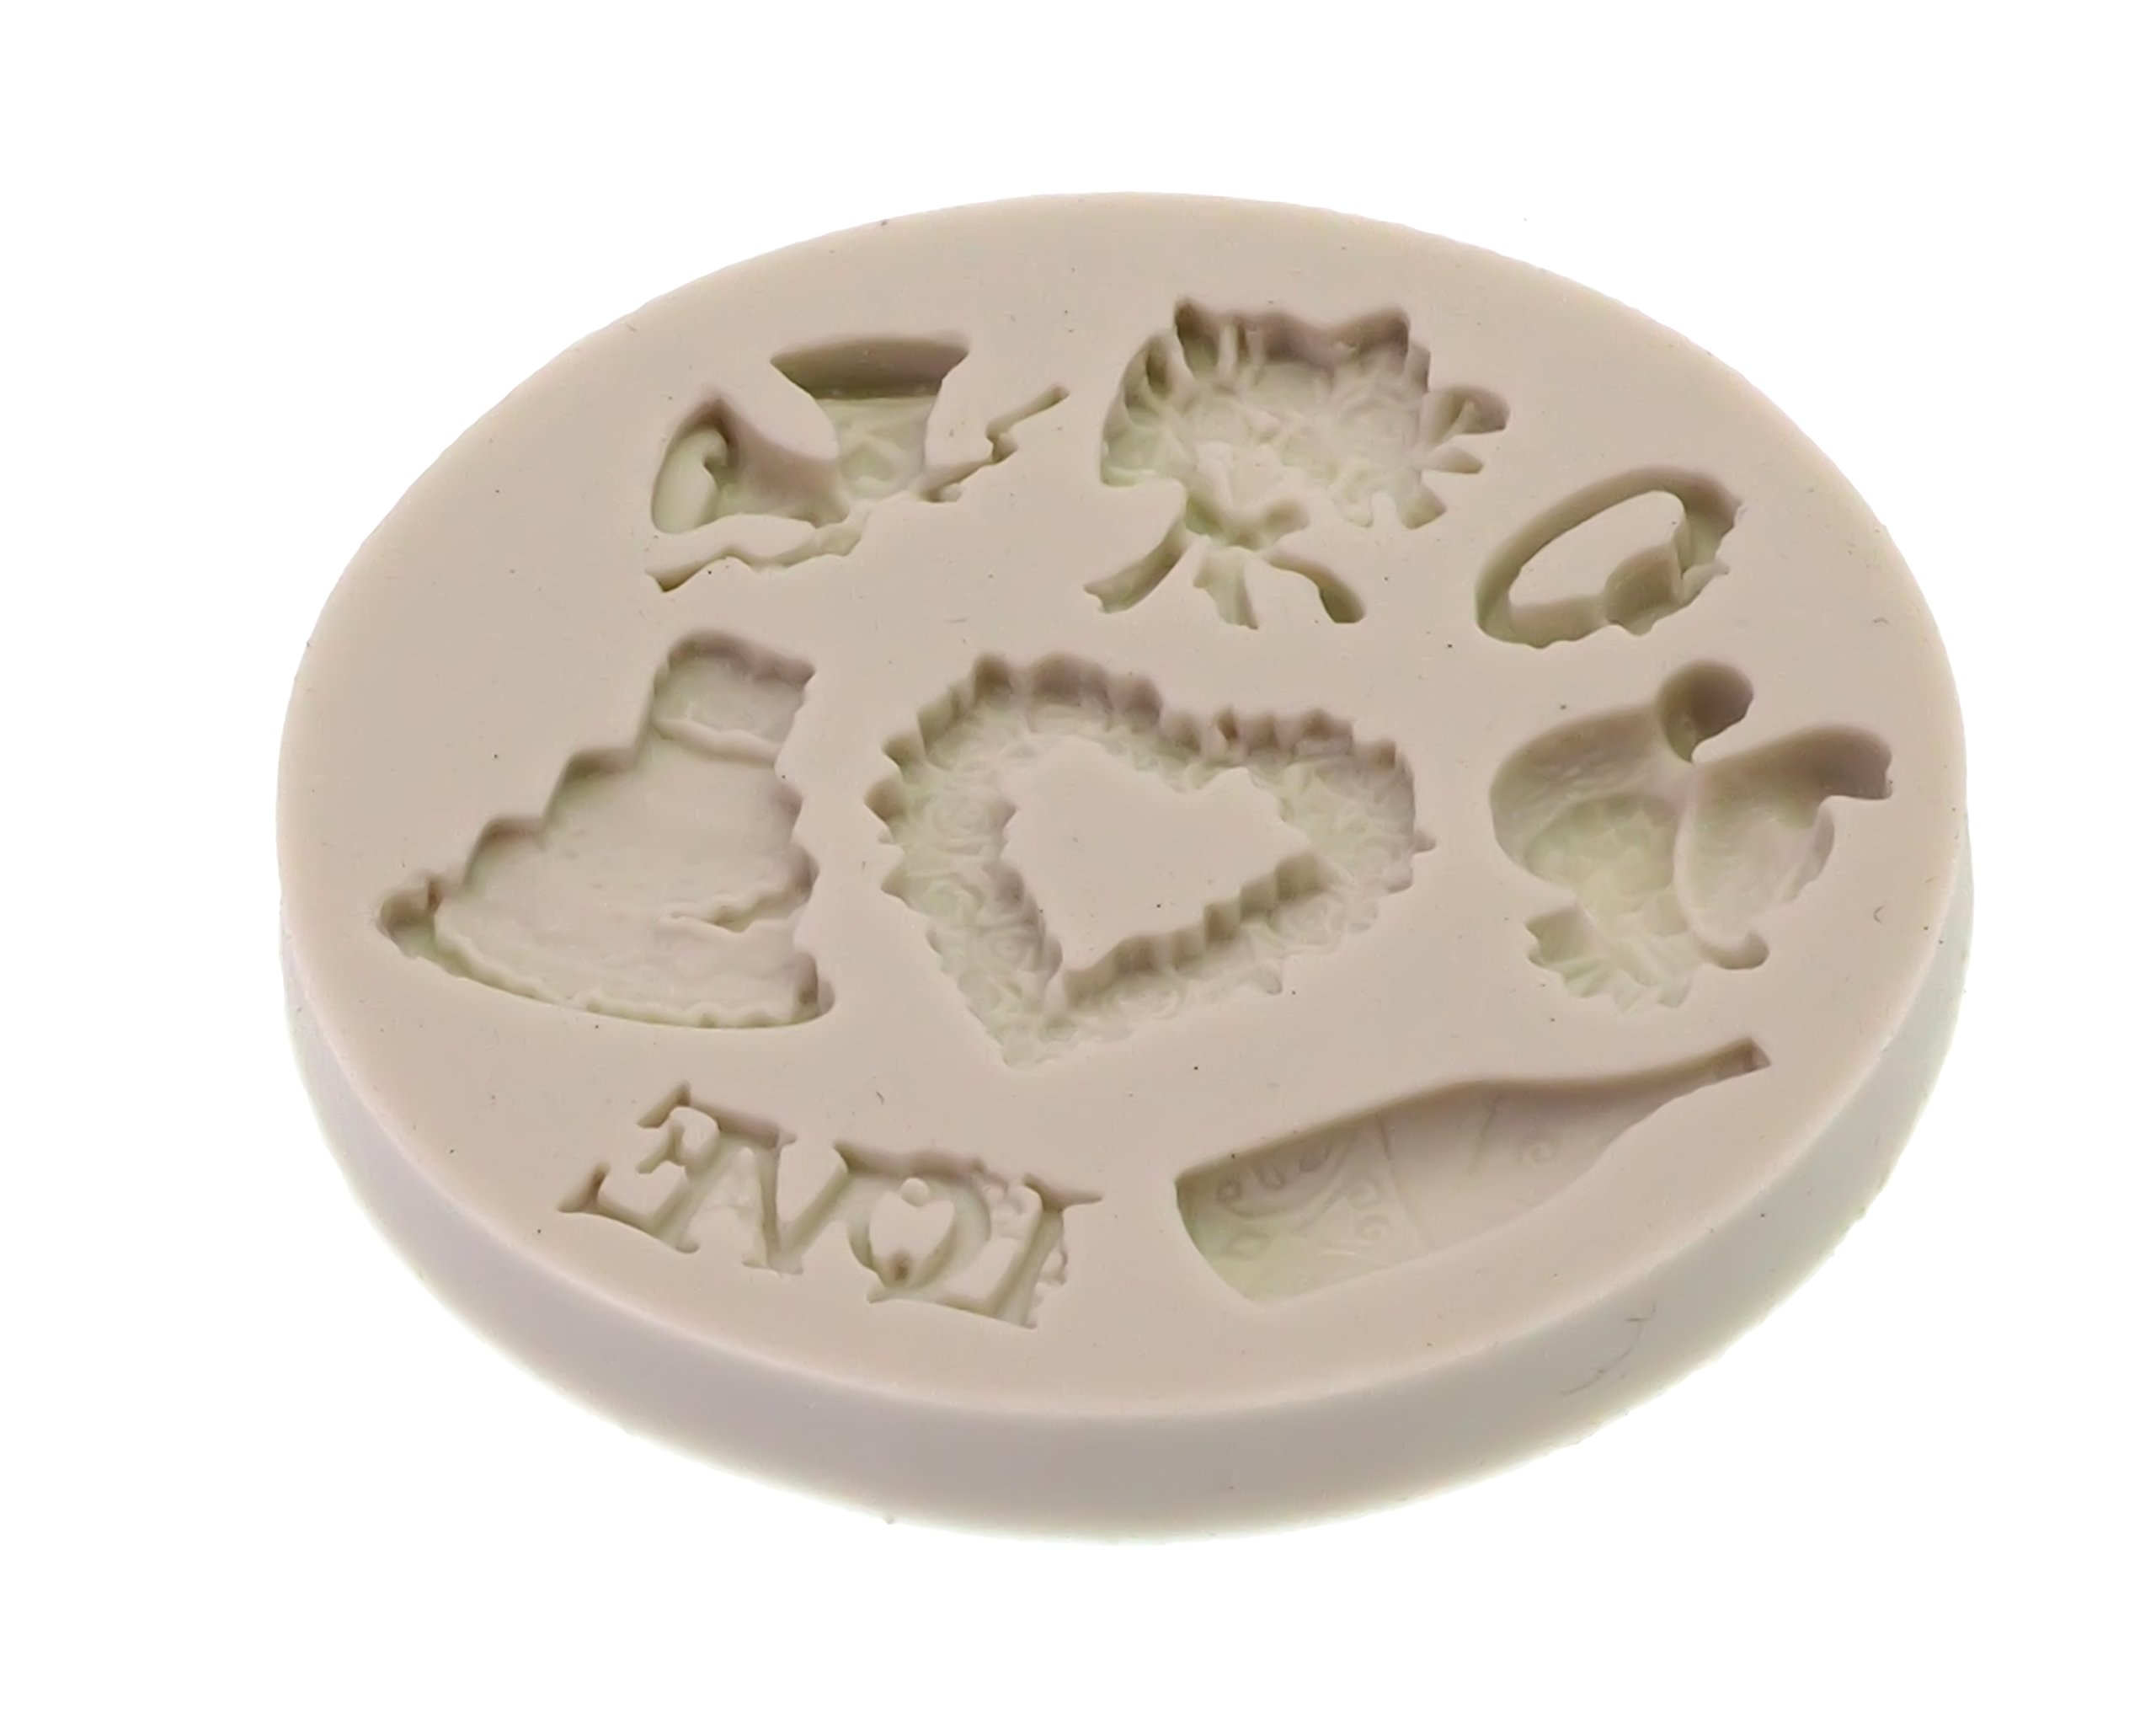 Creationtop Silicone Mold Teddy Bears Fondant and Gum Paste Candy Cake Baking Mold For Cake Decorating (Wedding Love) by CREATIONTOP (Image #2)